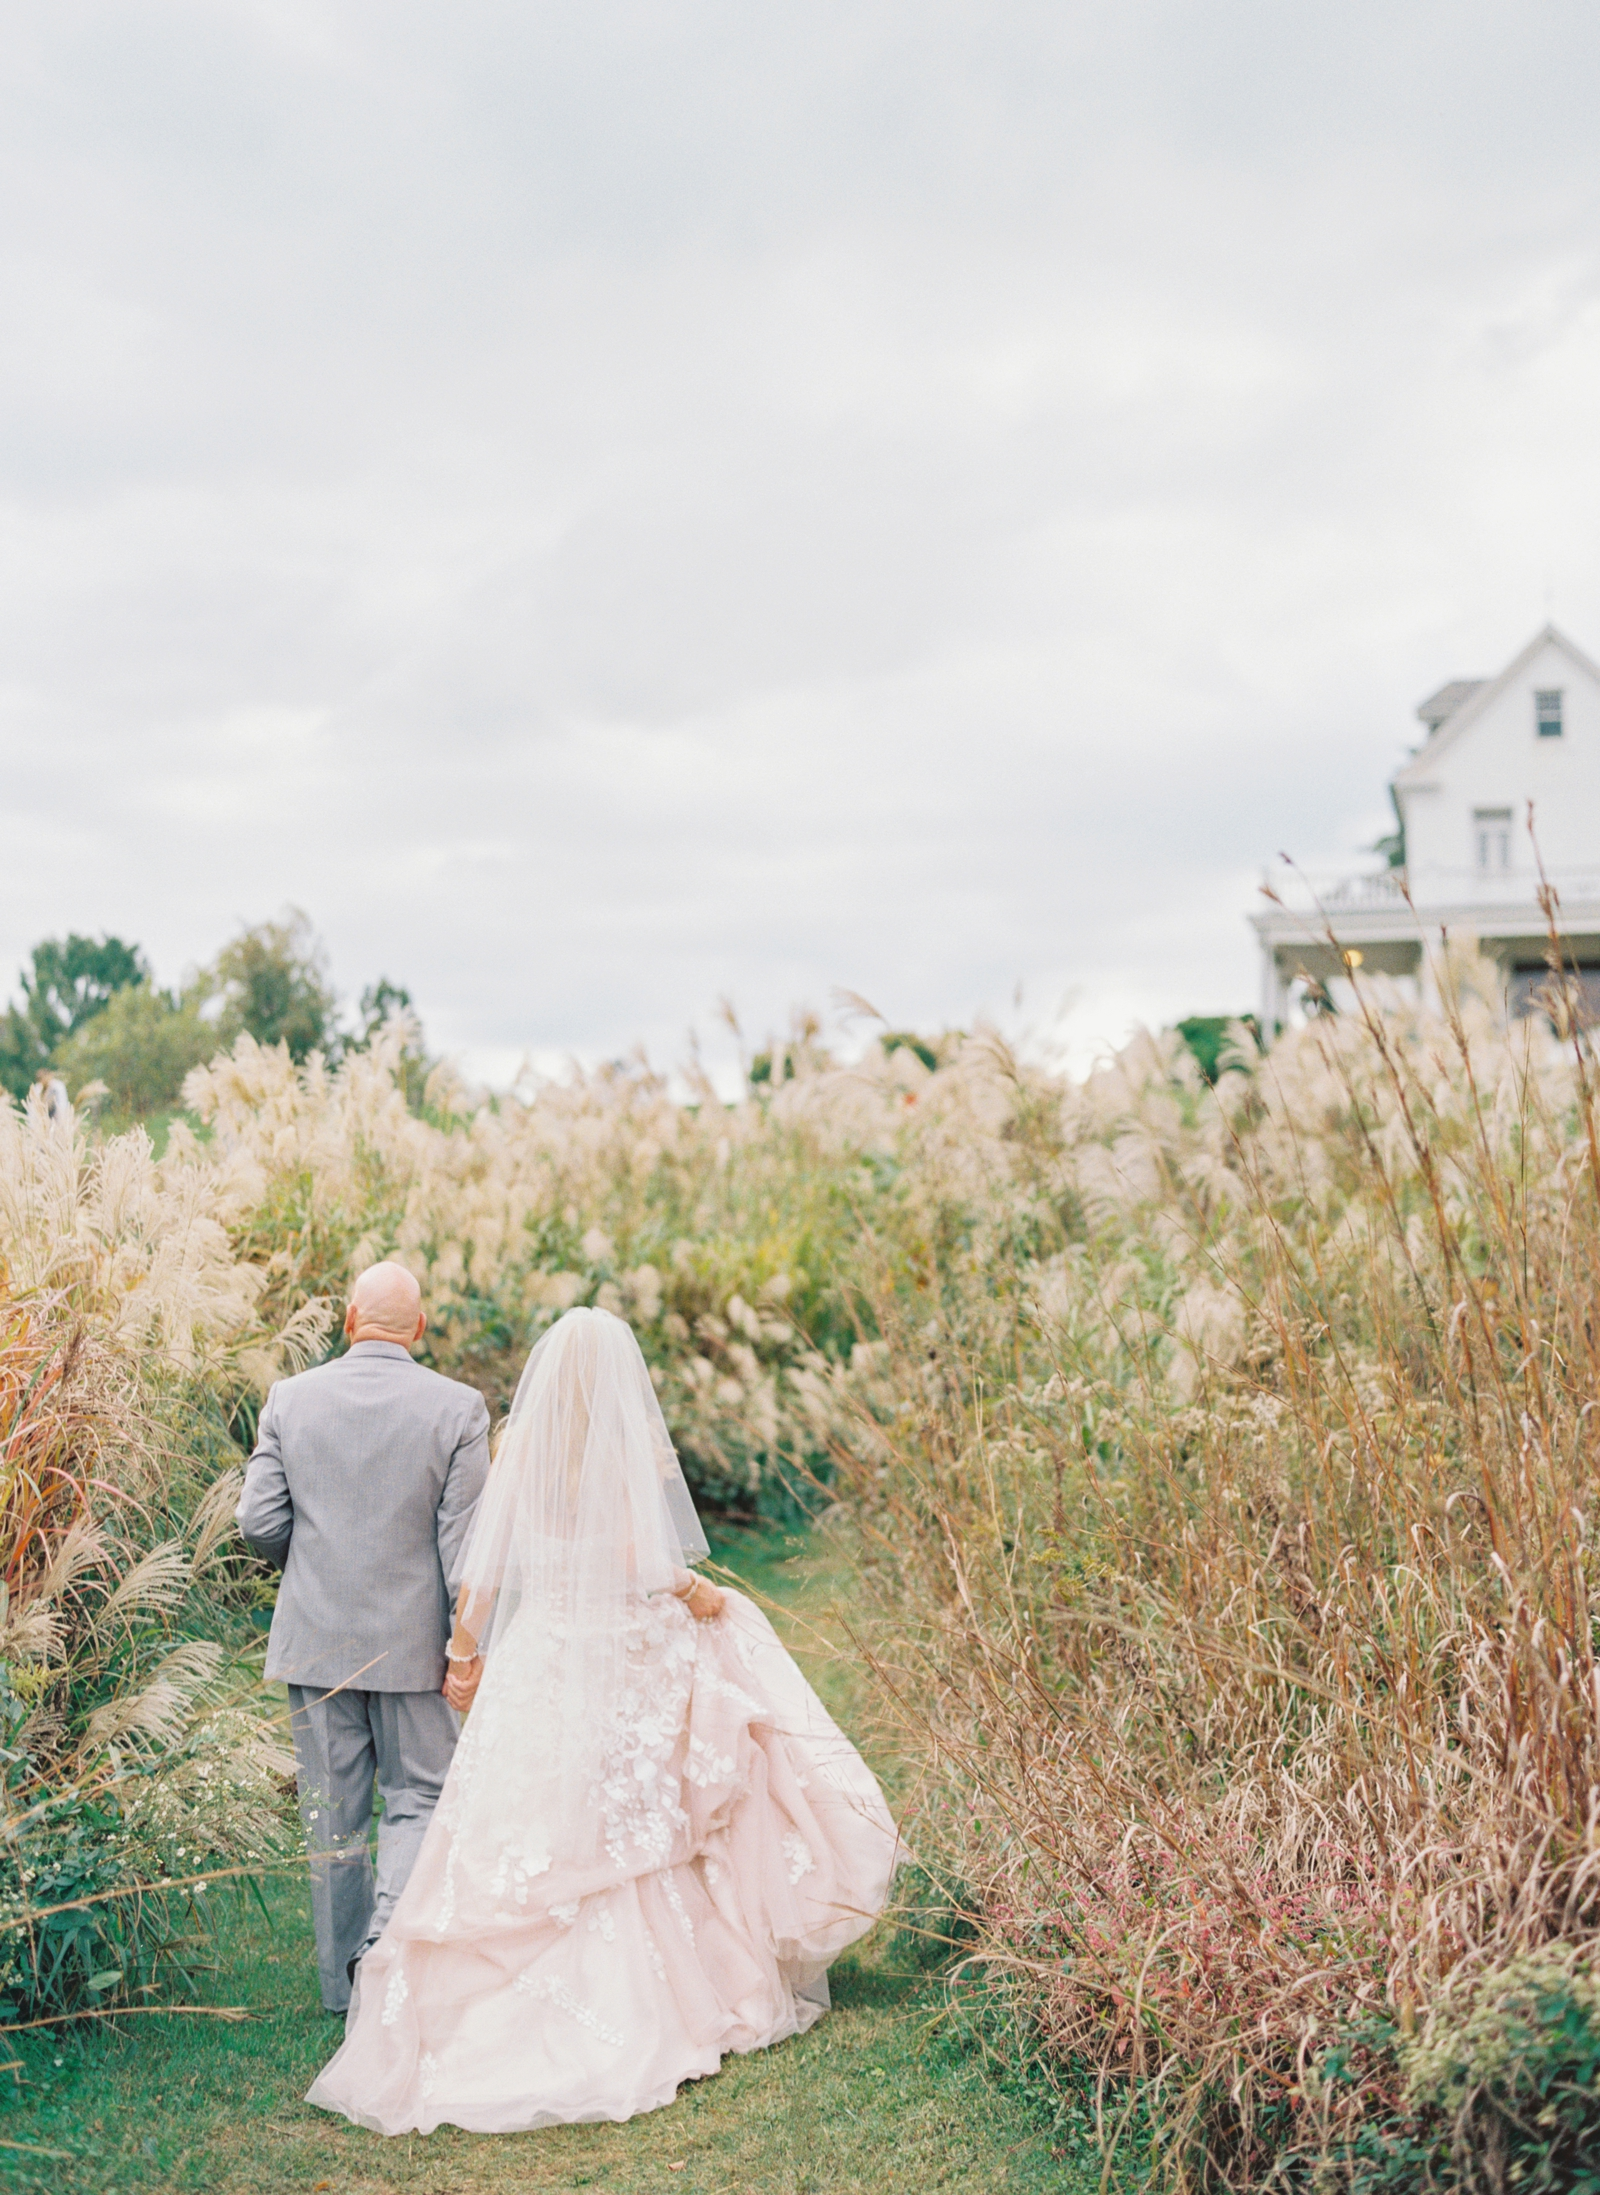 Laura + Terry French Blush Wedding - Magnolia Bluebird design & events